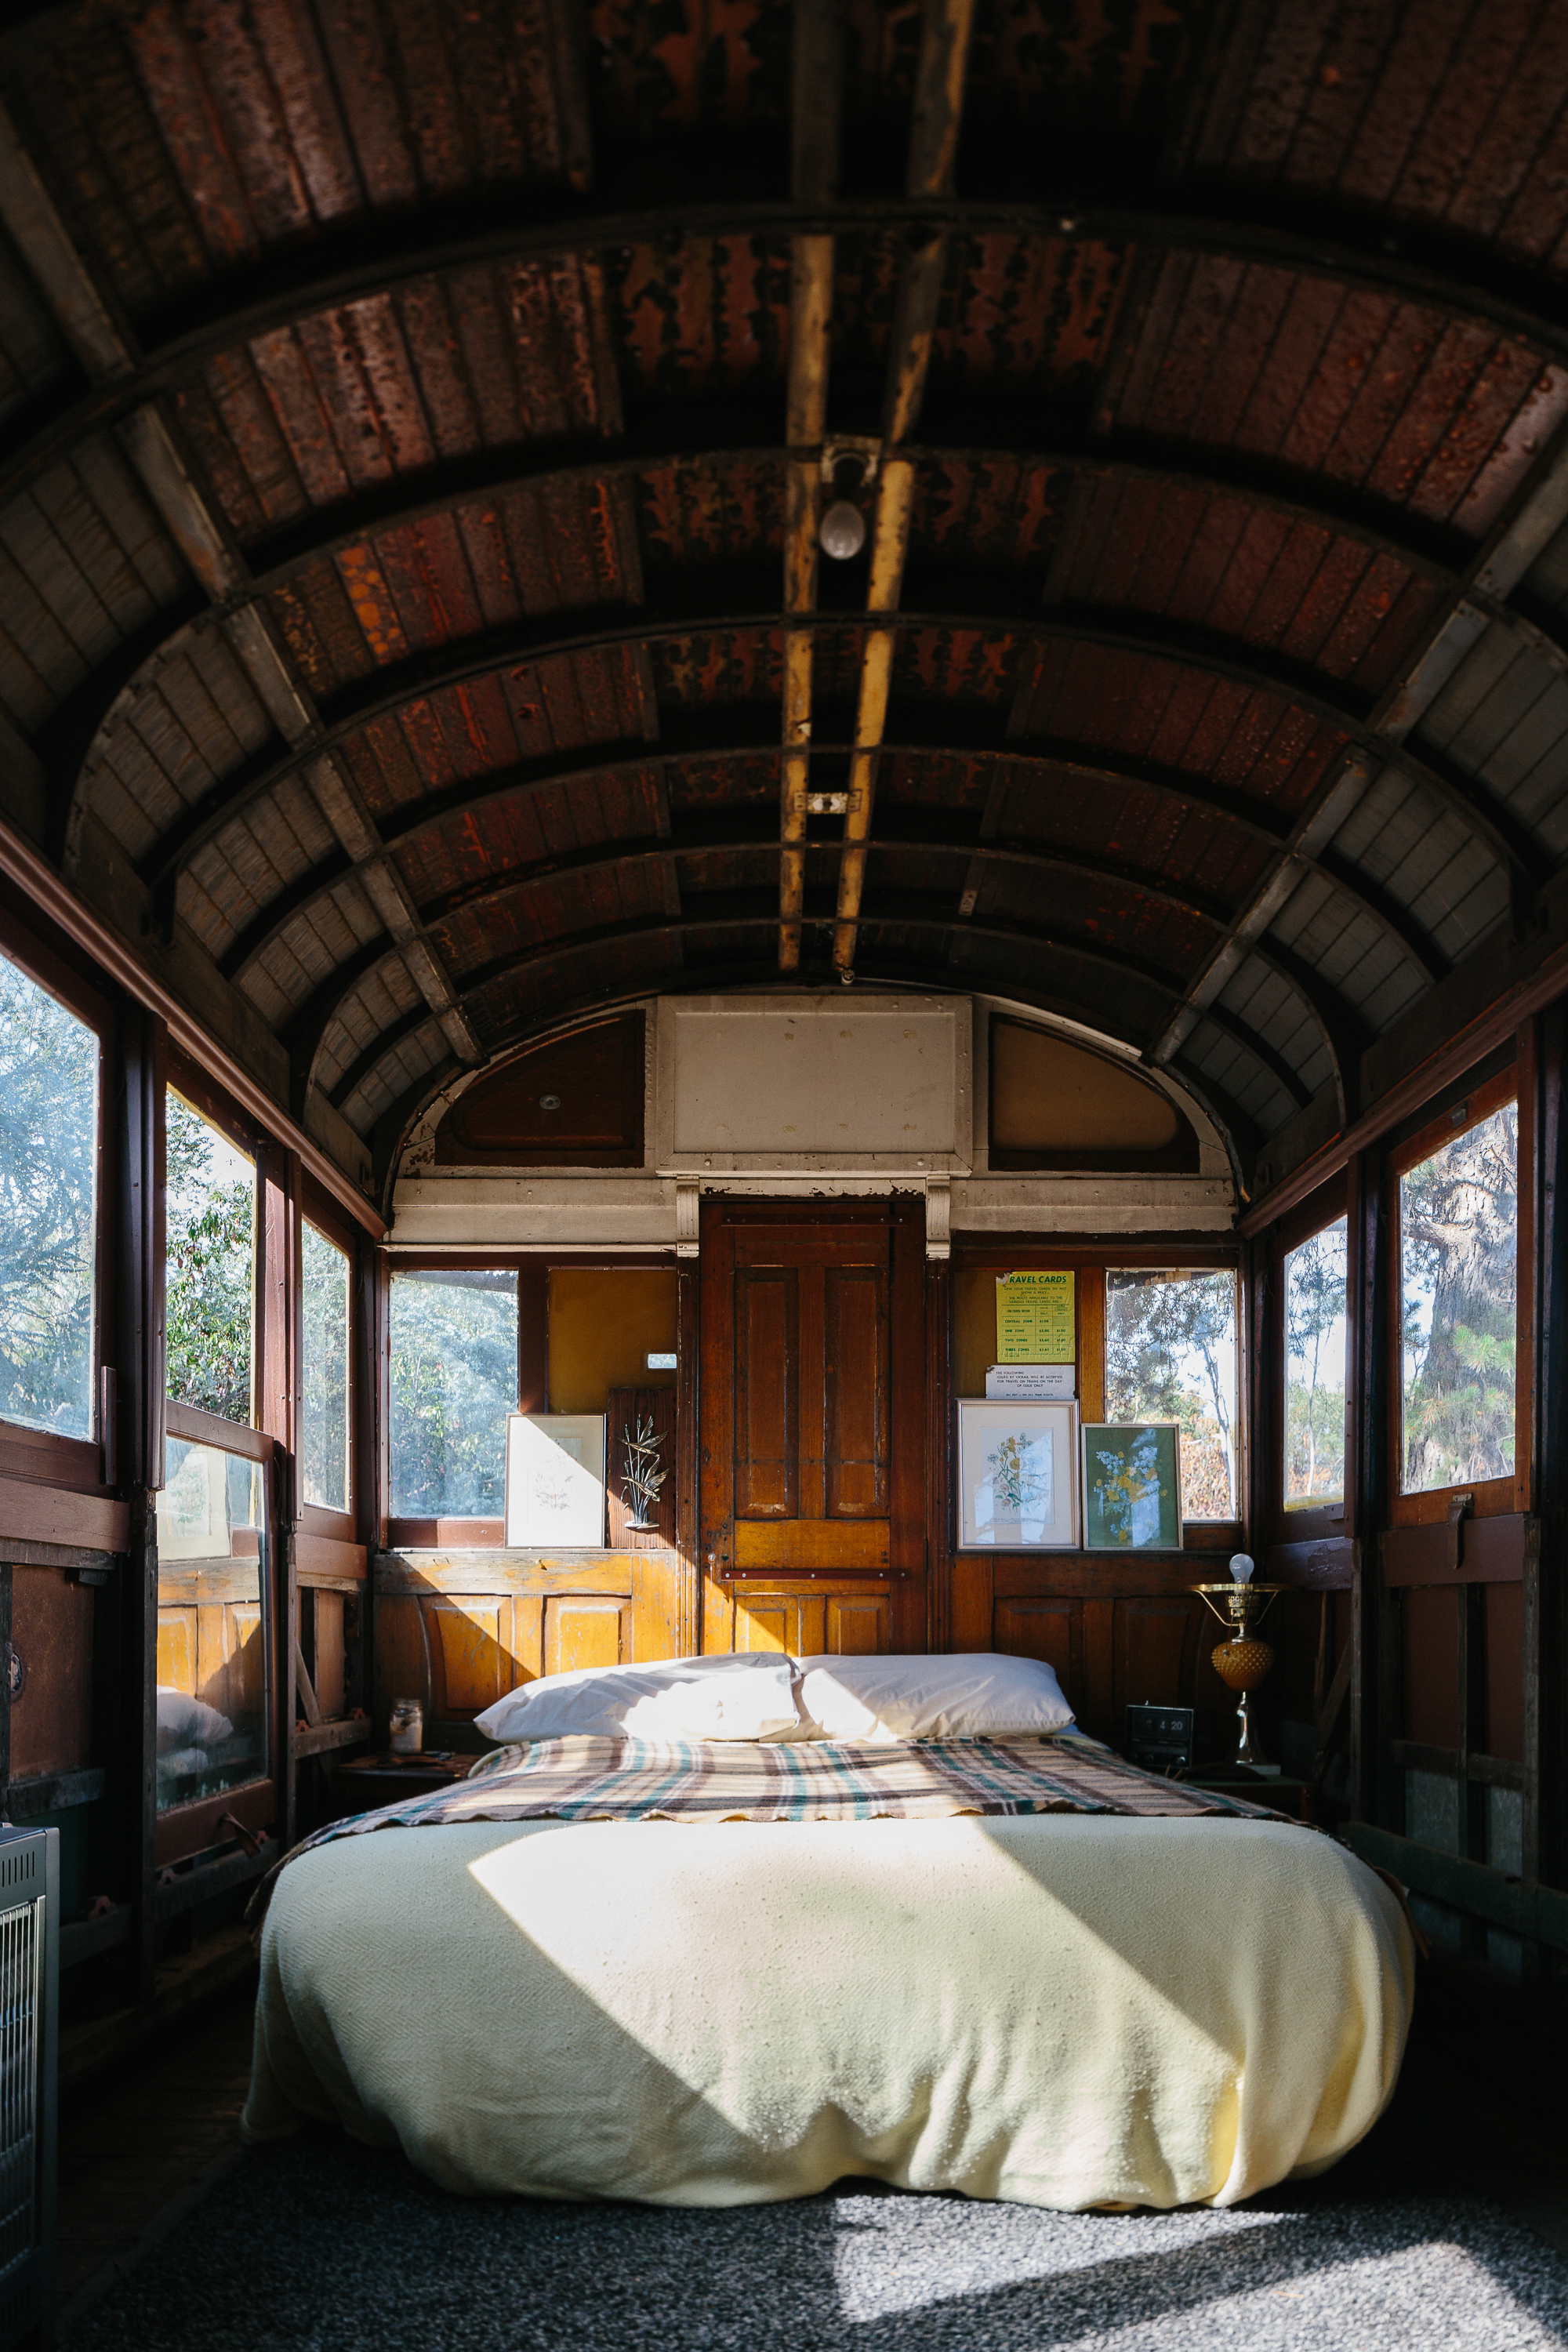 Melbourne interior photographer Marnie Hawson, The Shack, Lauriston for Airbnb